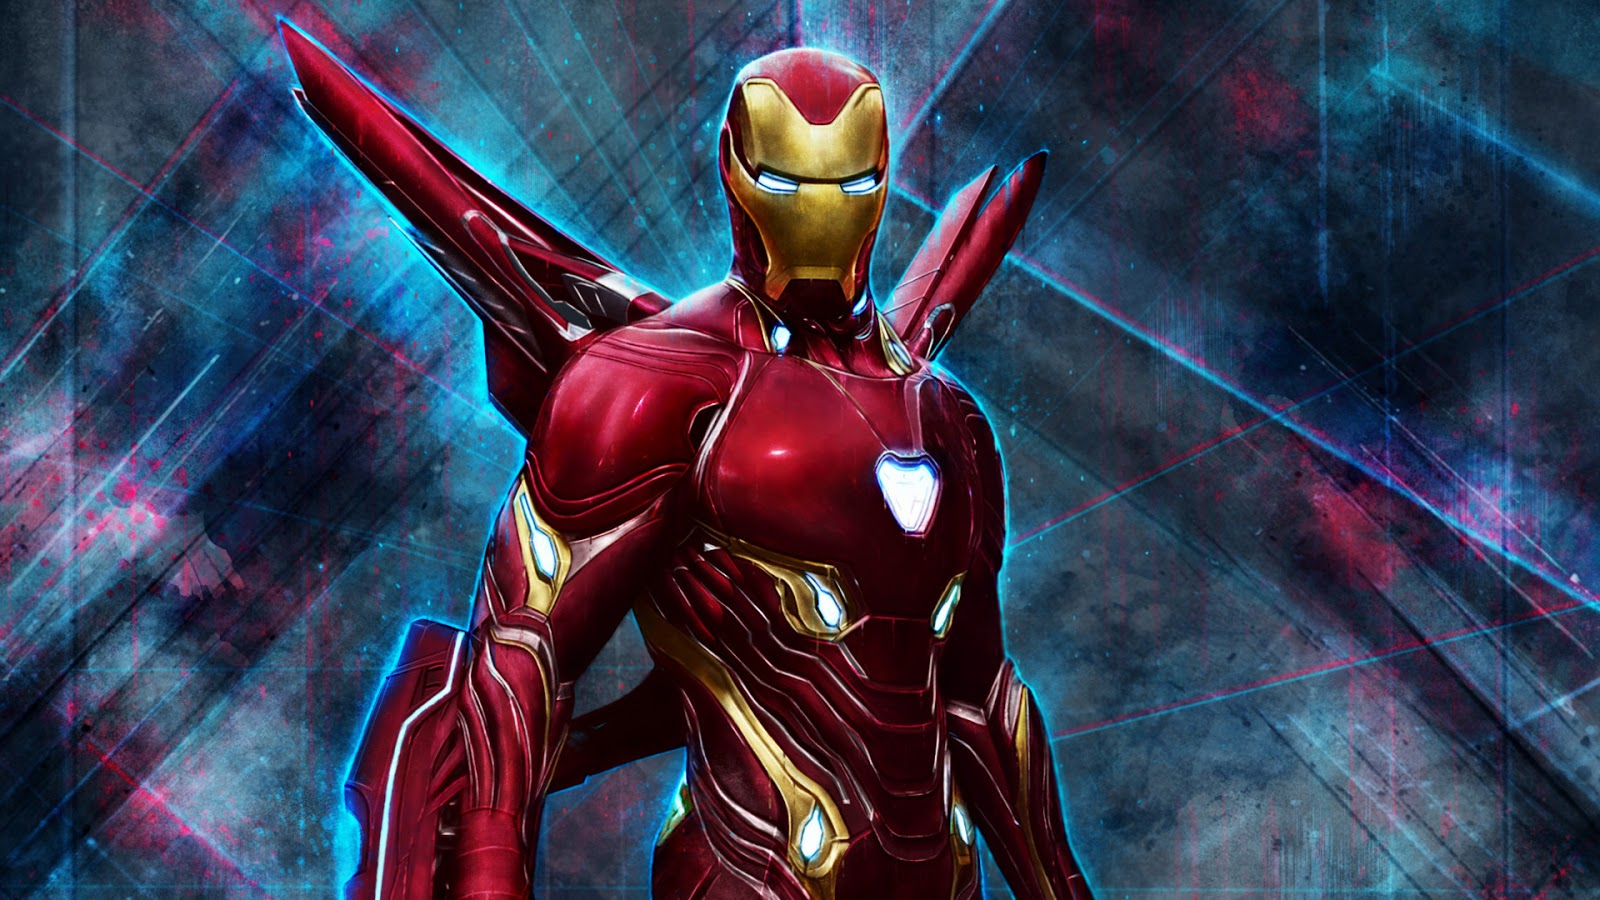 Free download Iron Man HD Wallpapers From Infinity War ...